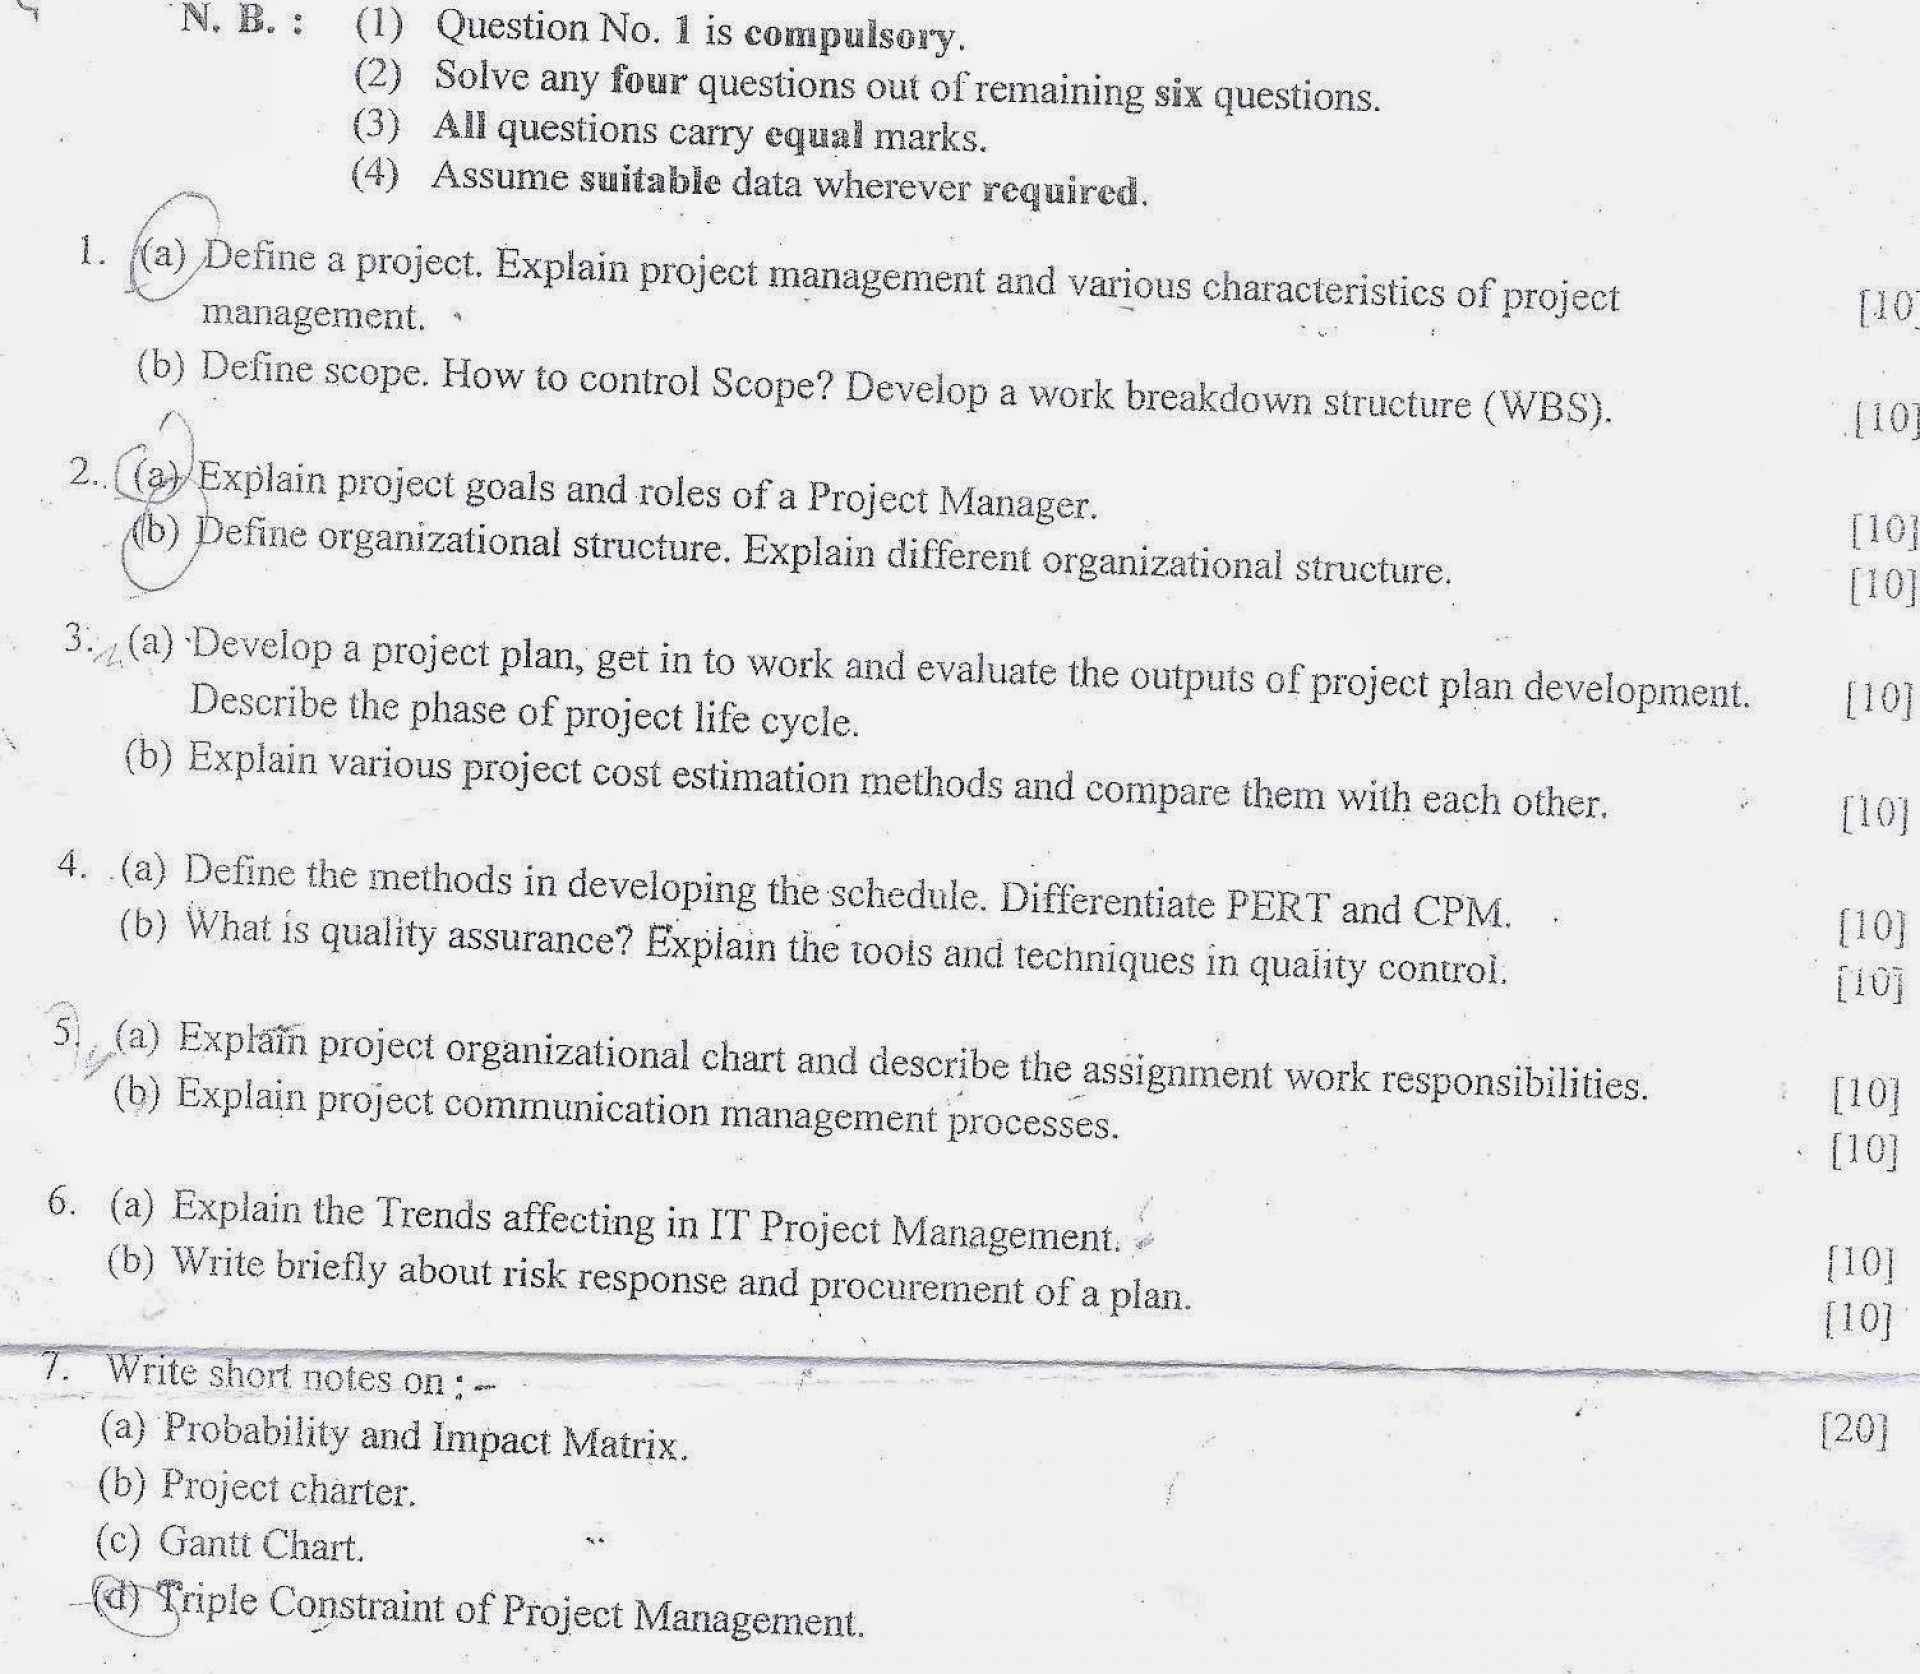 009 Cornell Essay Pmpaper1 Stupendous Mba Examples Engineering Essays That Worked 1920